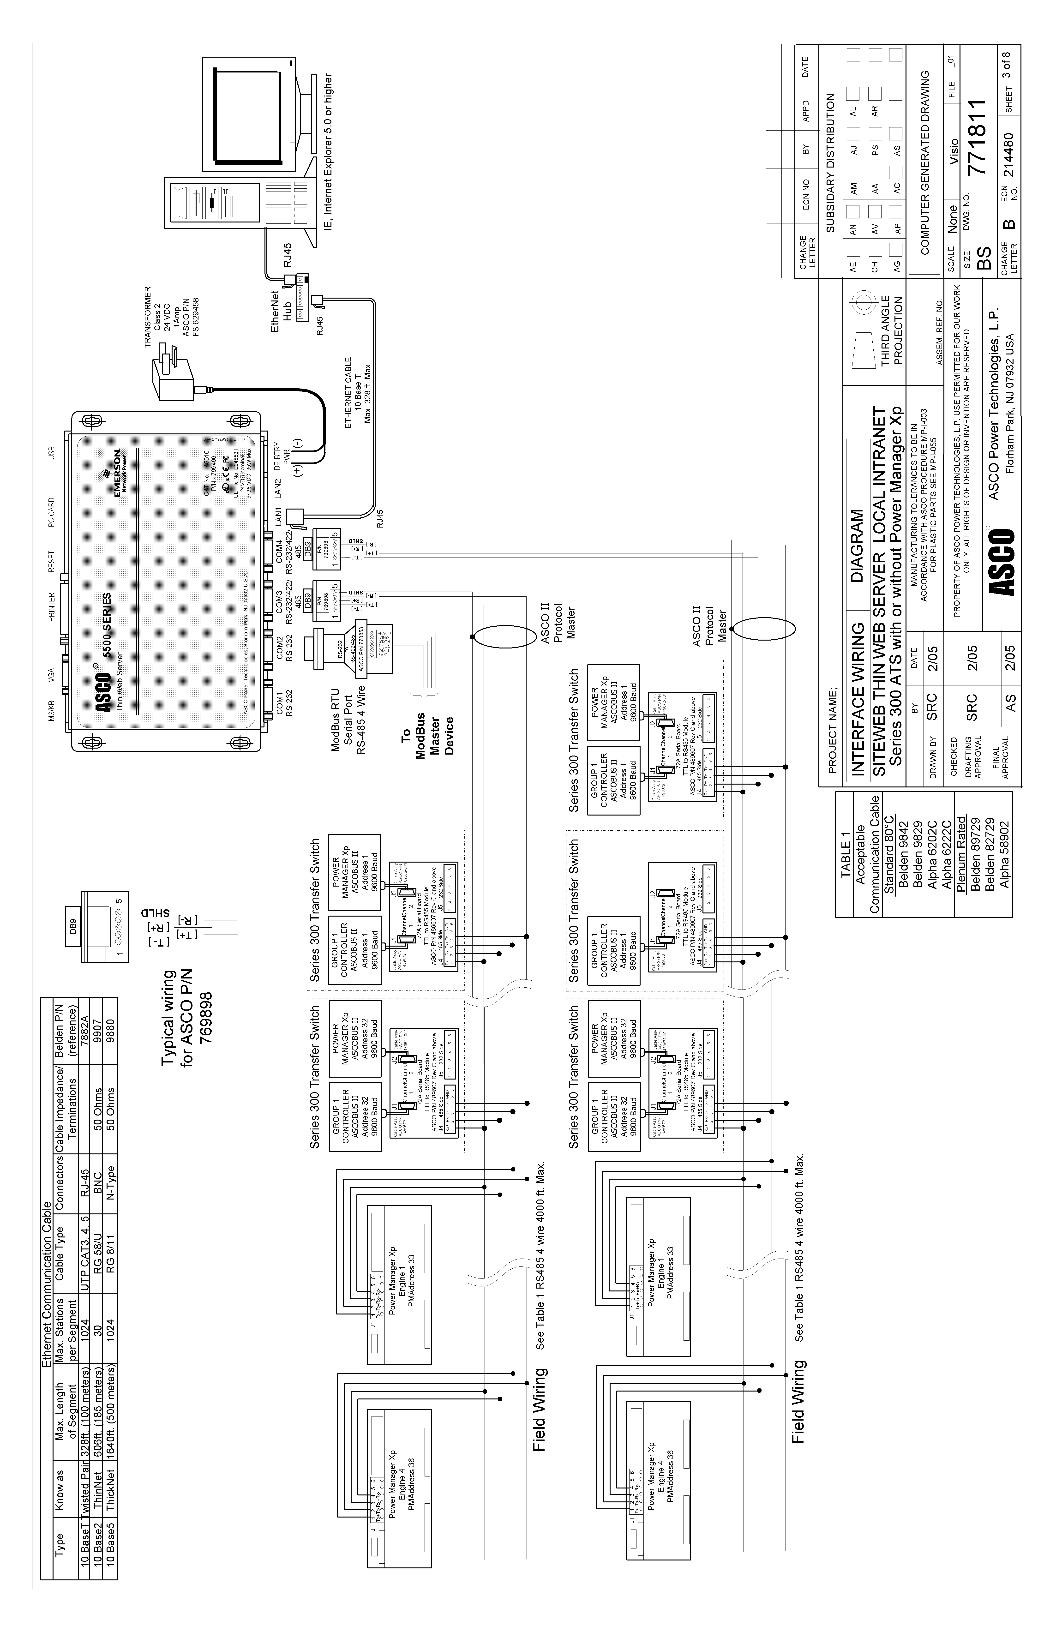 asco 7000 series ats wiring diagram Collection-Emerson 5500 SERIES User Manual Pdf Download Inside Asco Wiring 11 Asco Automatic Transfer Switch Series 300 Wiring Diagram 16-s